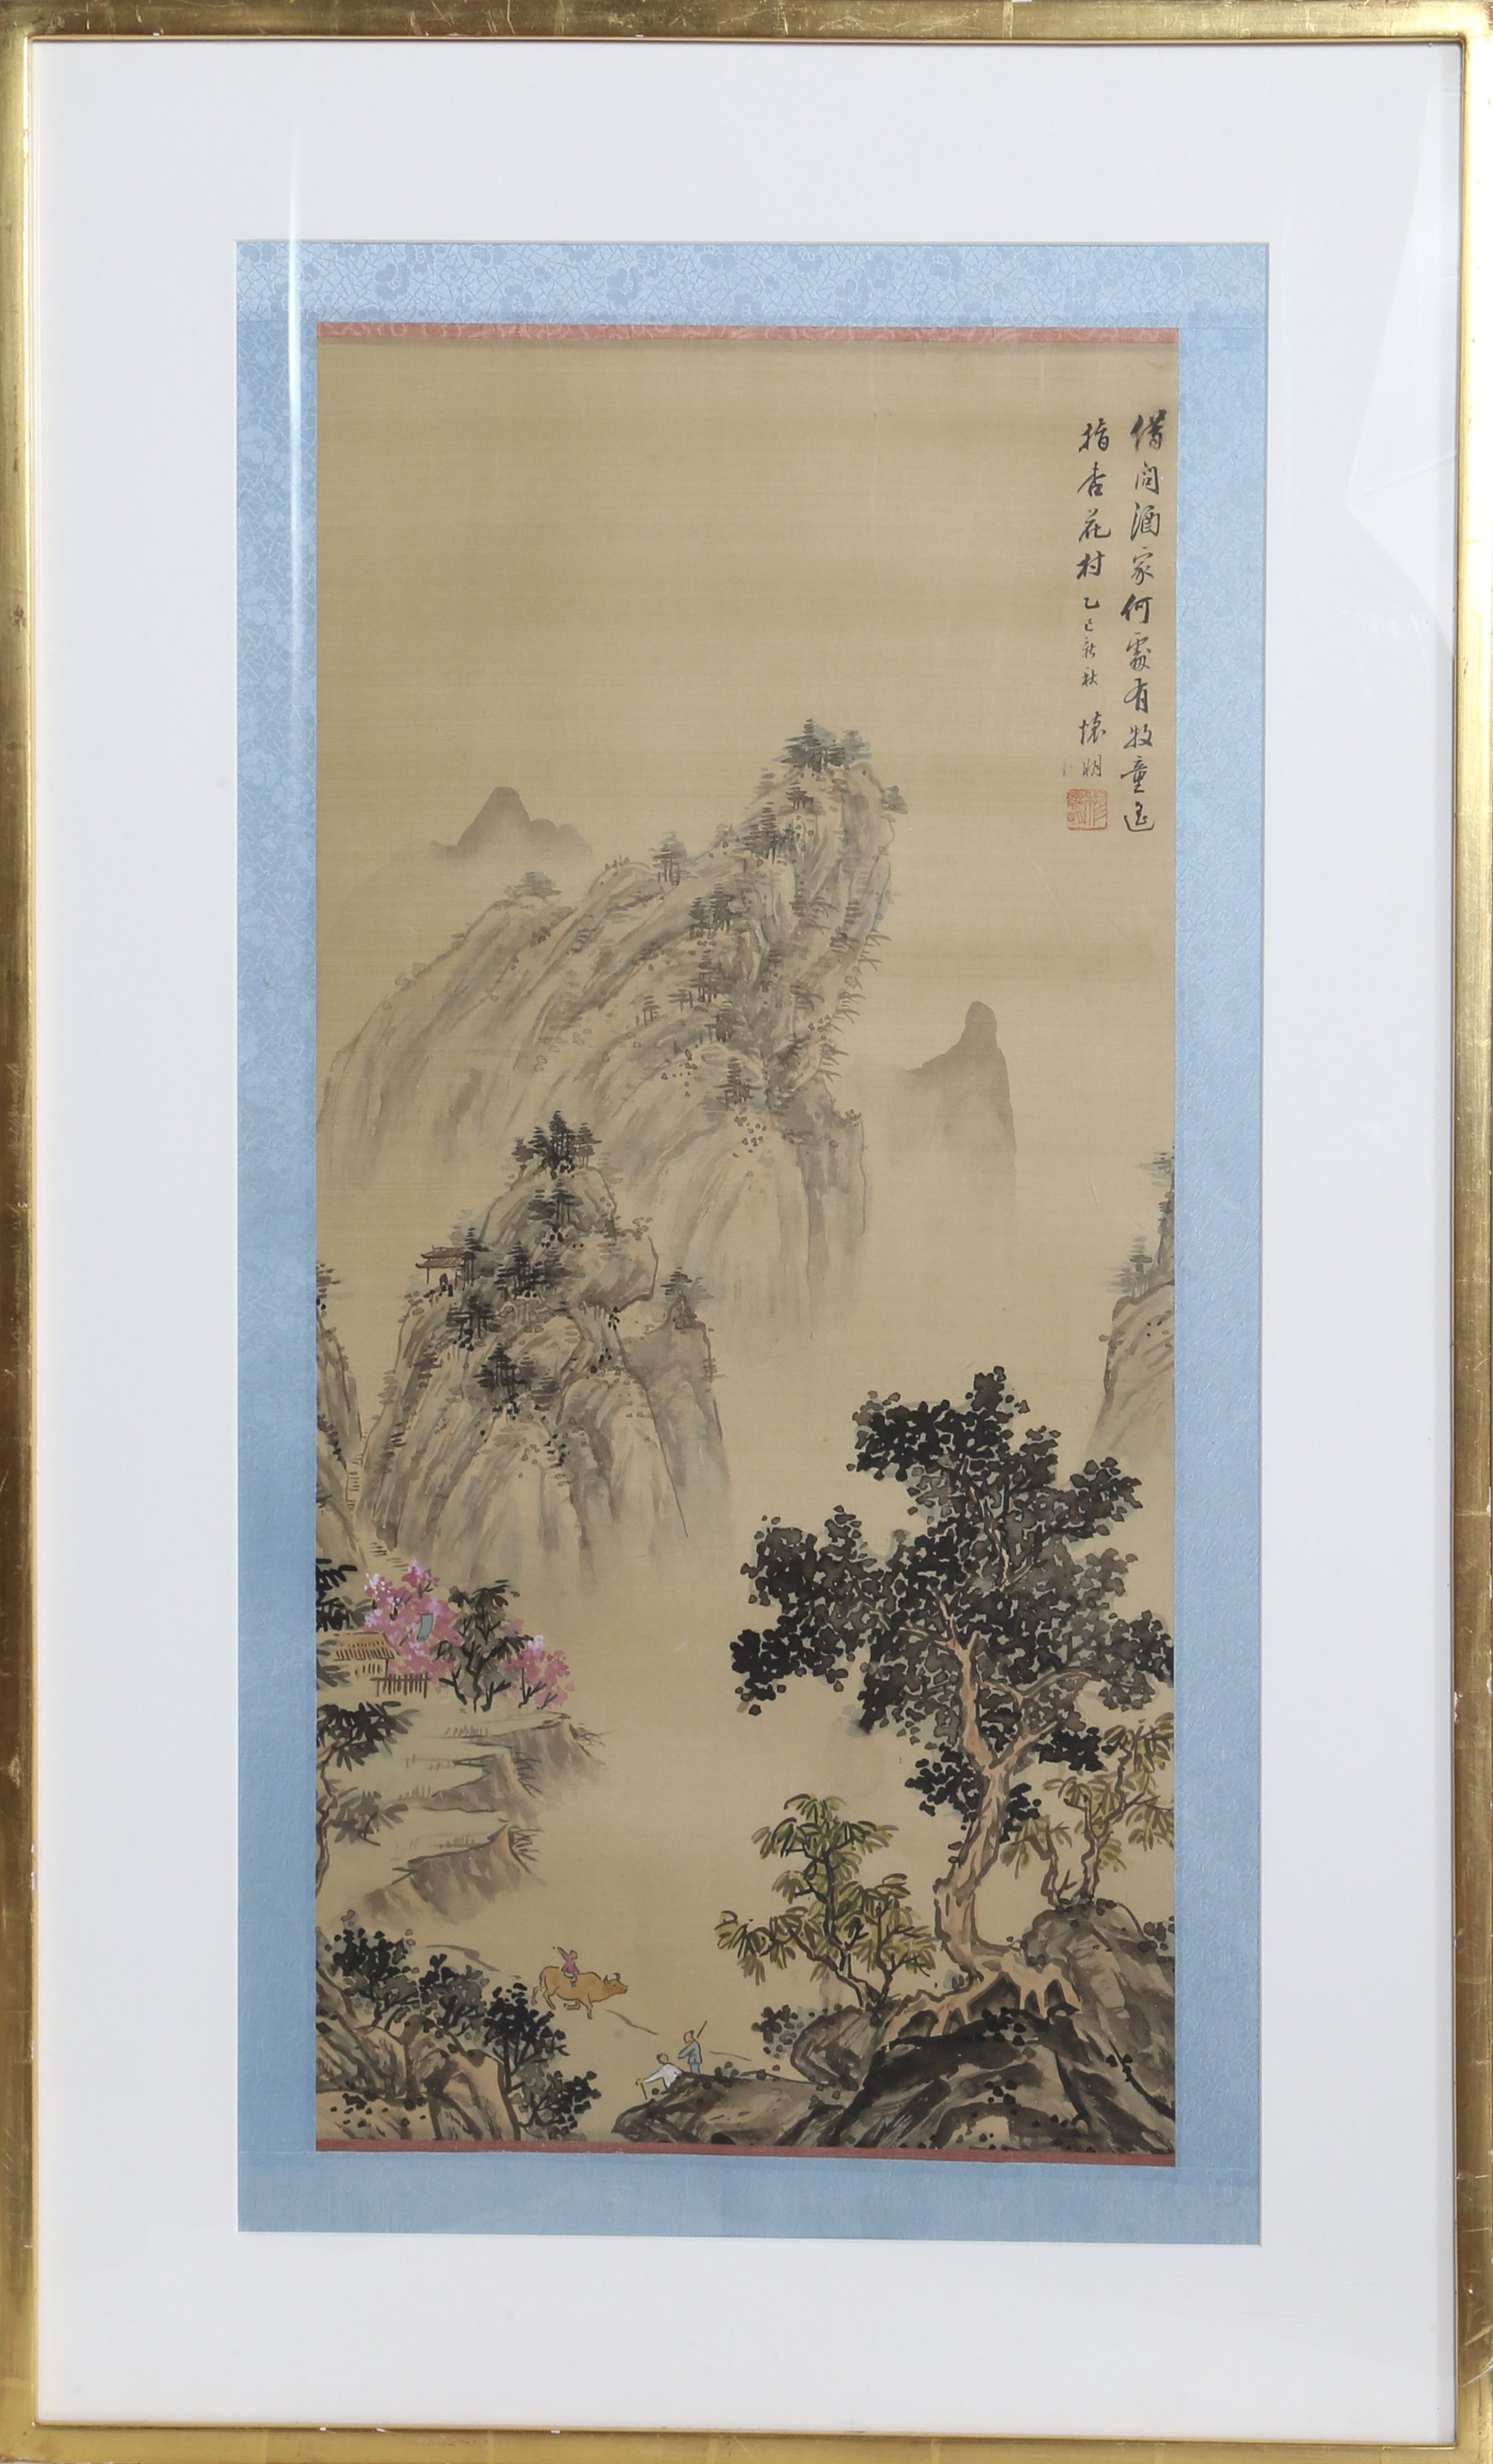 Unknown, Chinese, Spring Mountain Landscape with Ox Tapestries and Textiles - RoGallery